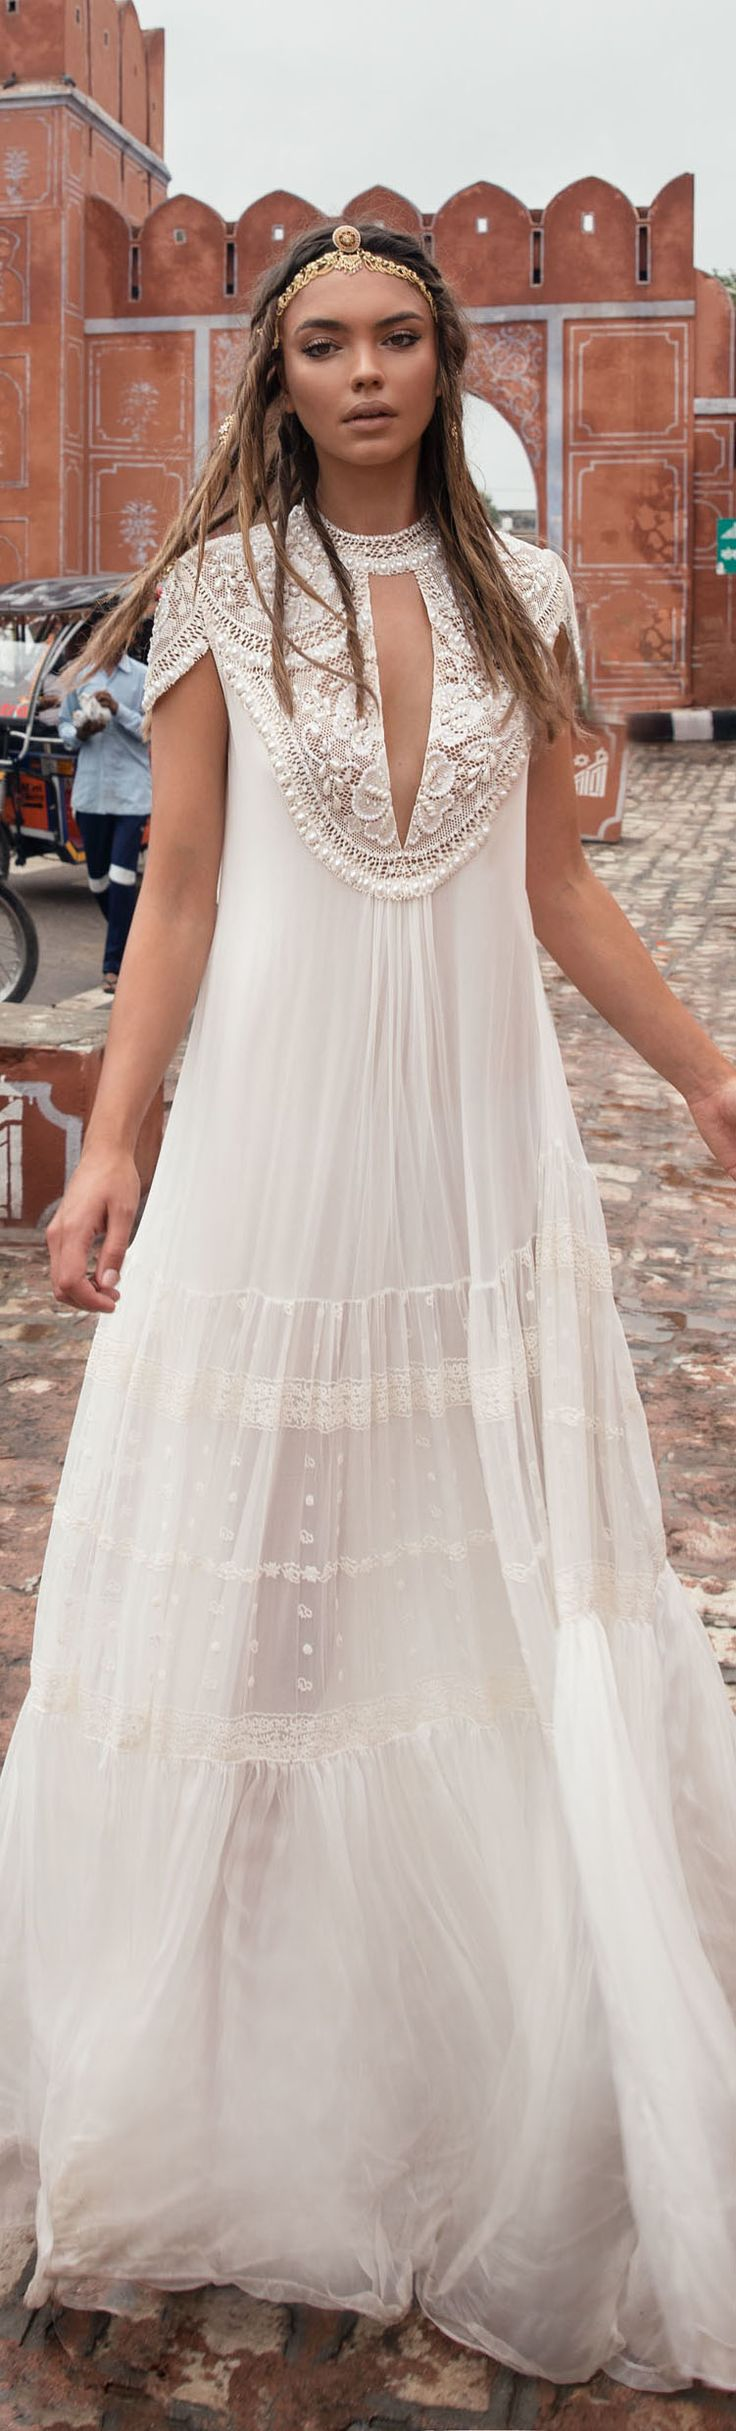 Bohemian wedding dress from Carchy